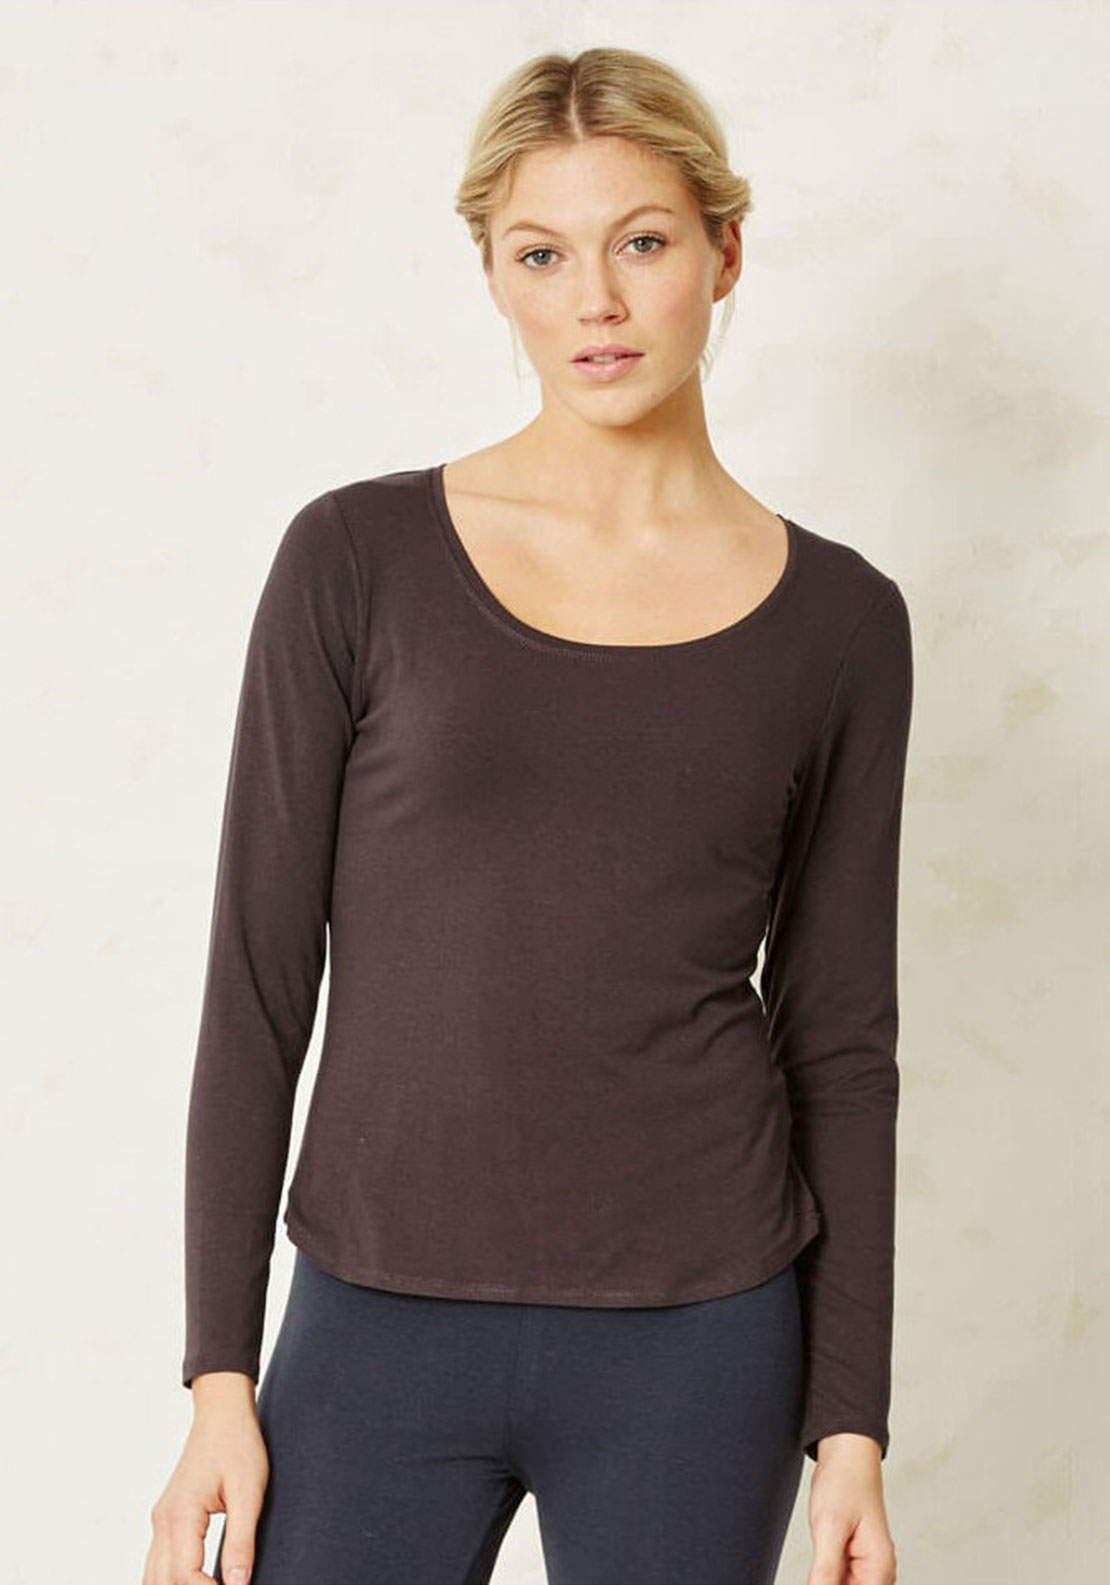 Braintree Cotton Blend Long Sleeve T-Shirt, Grey